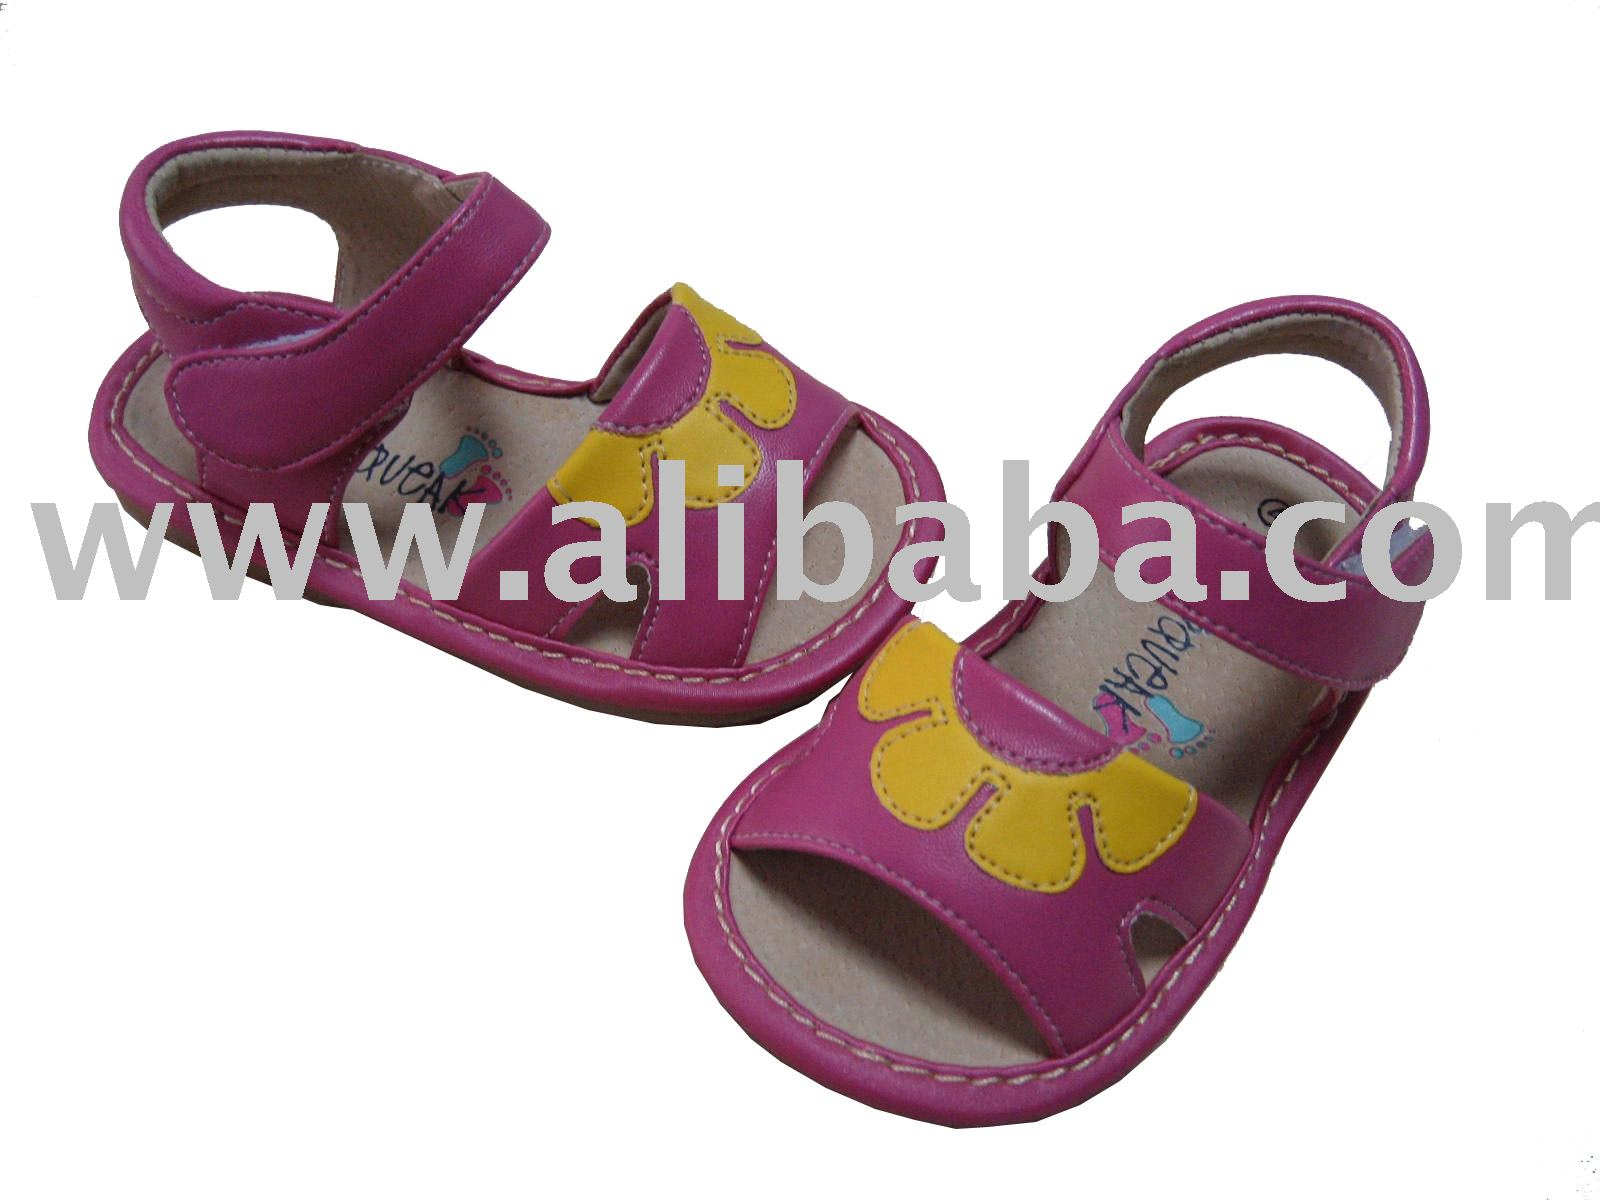 Squeakers Squeaky Shoes Squeakers Squeaky Shoes Suppliers and